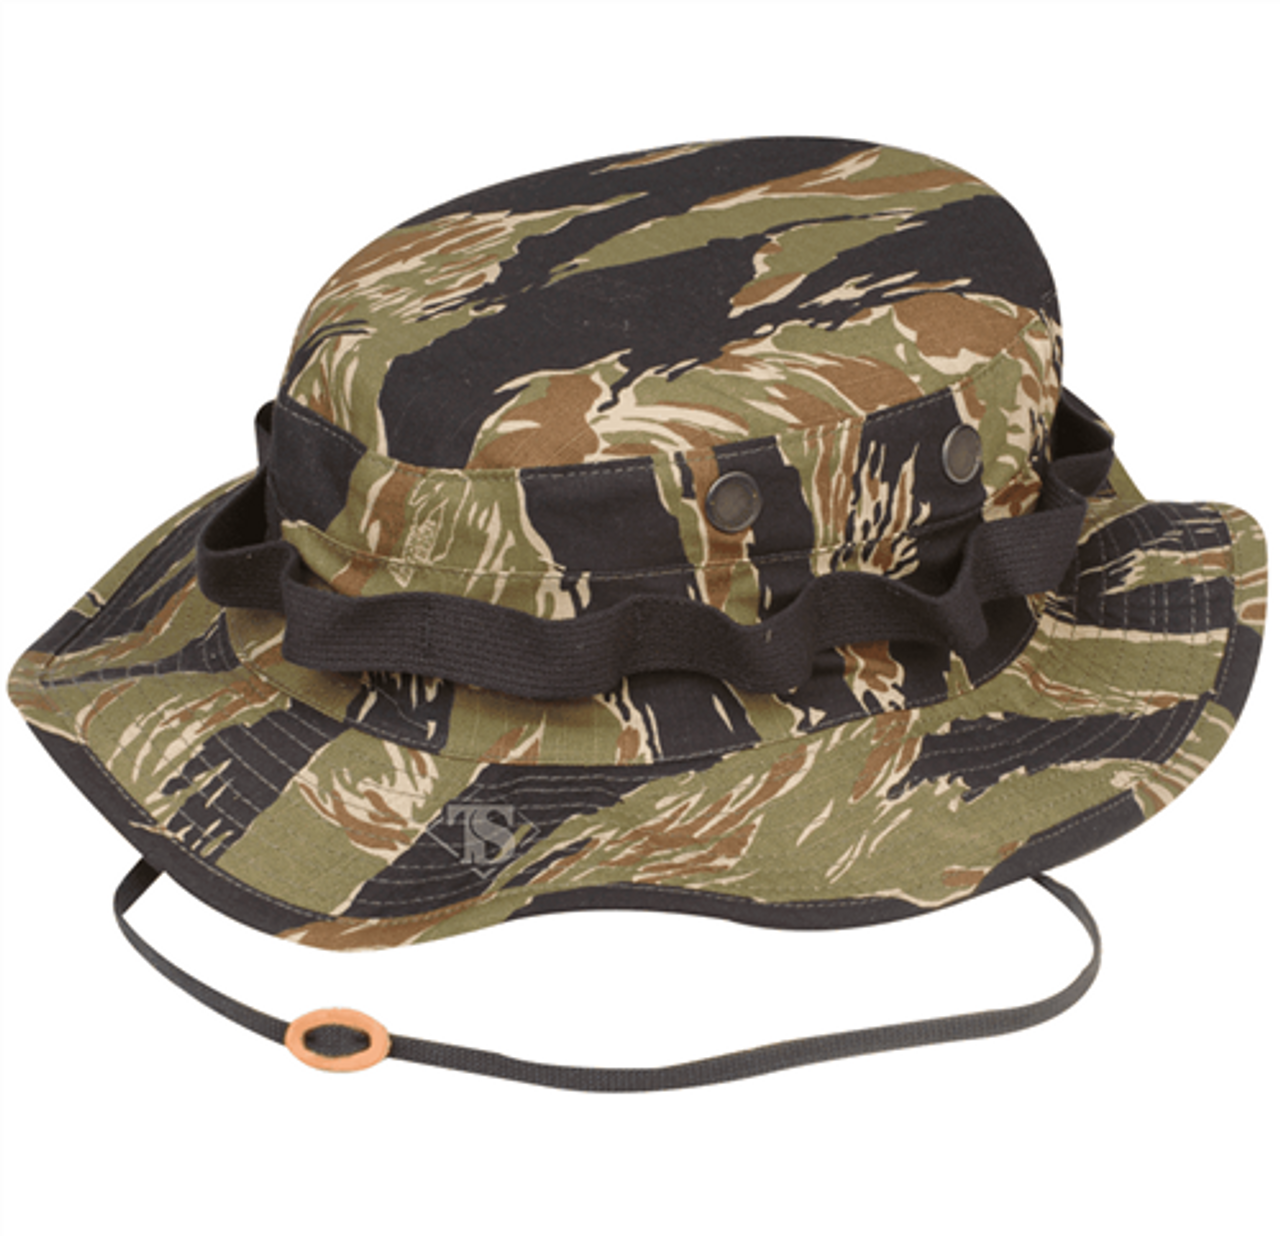 Military Boonie Vietnam Tiger Stripe - 100% Cotton Rip-Stop from Hessen Tactical.